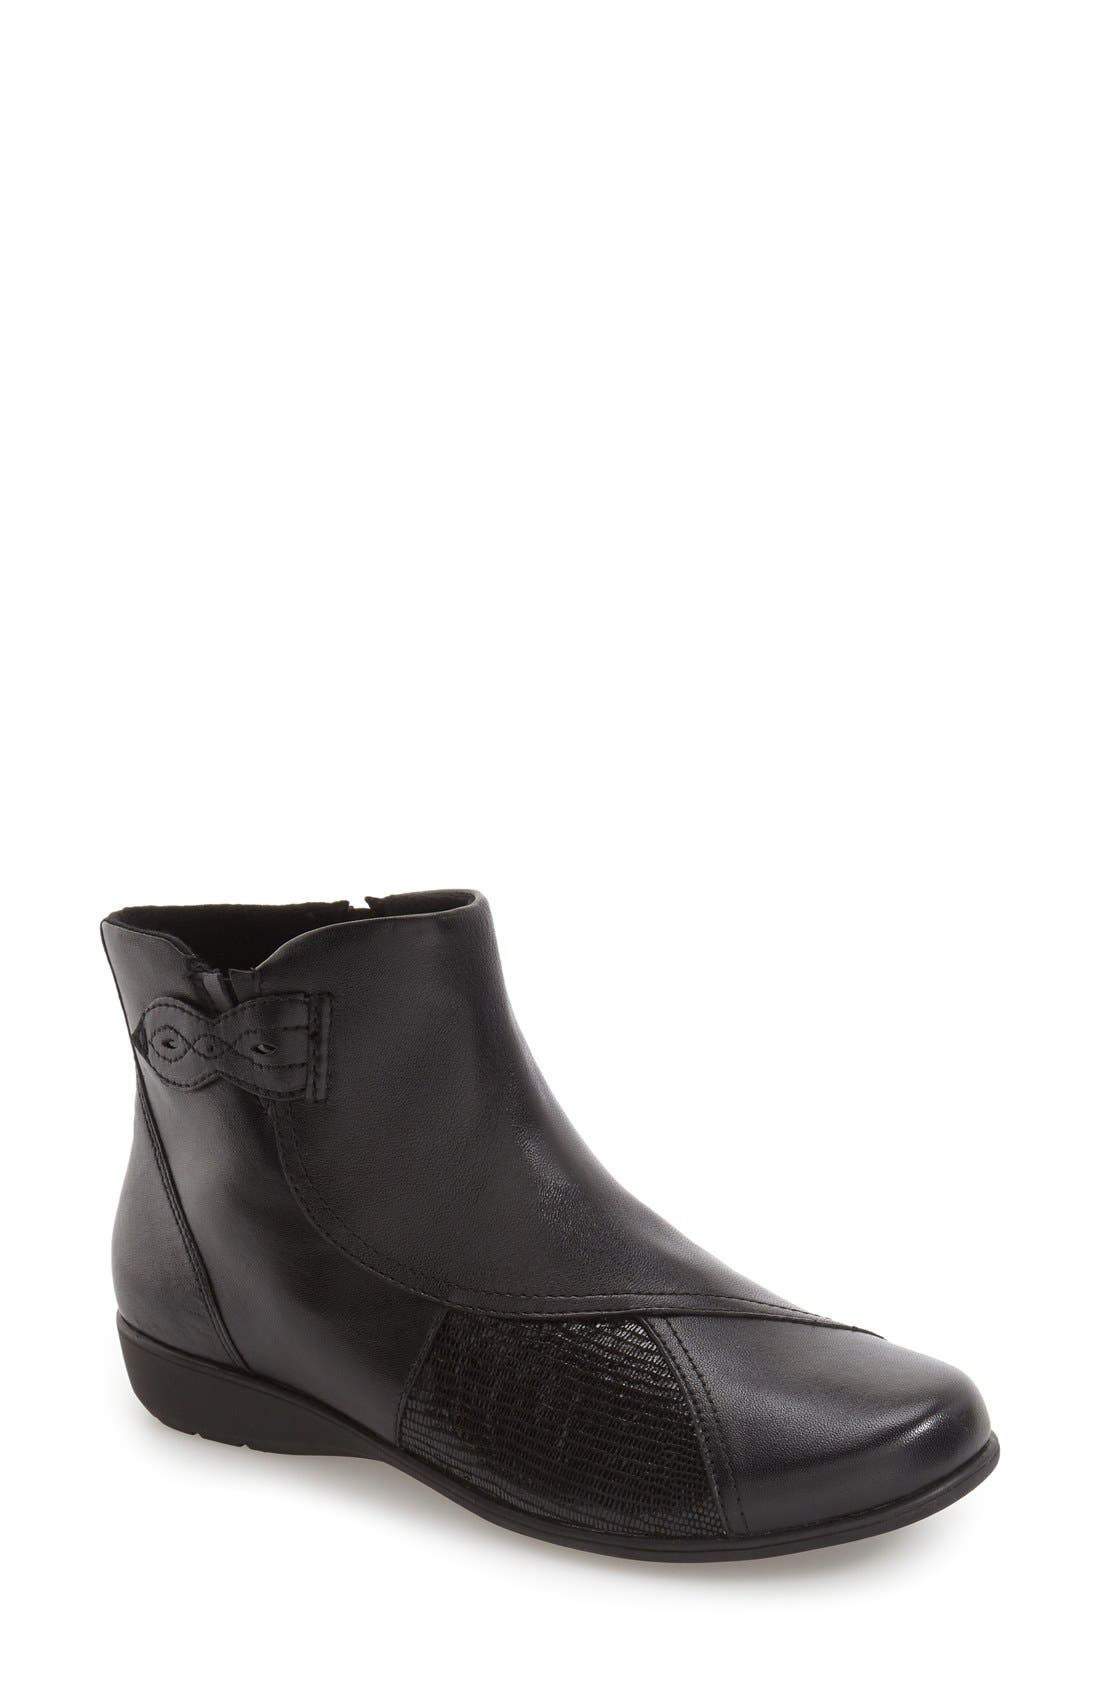 'Anstice' Wedge Bootie,                         Main,                         color, Black Leather